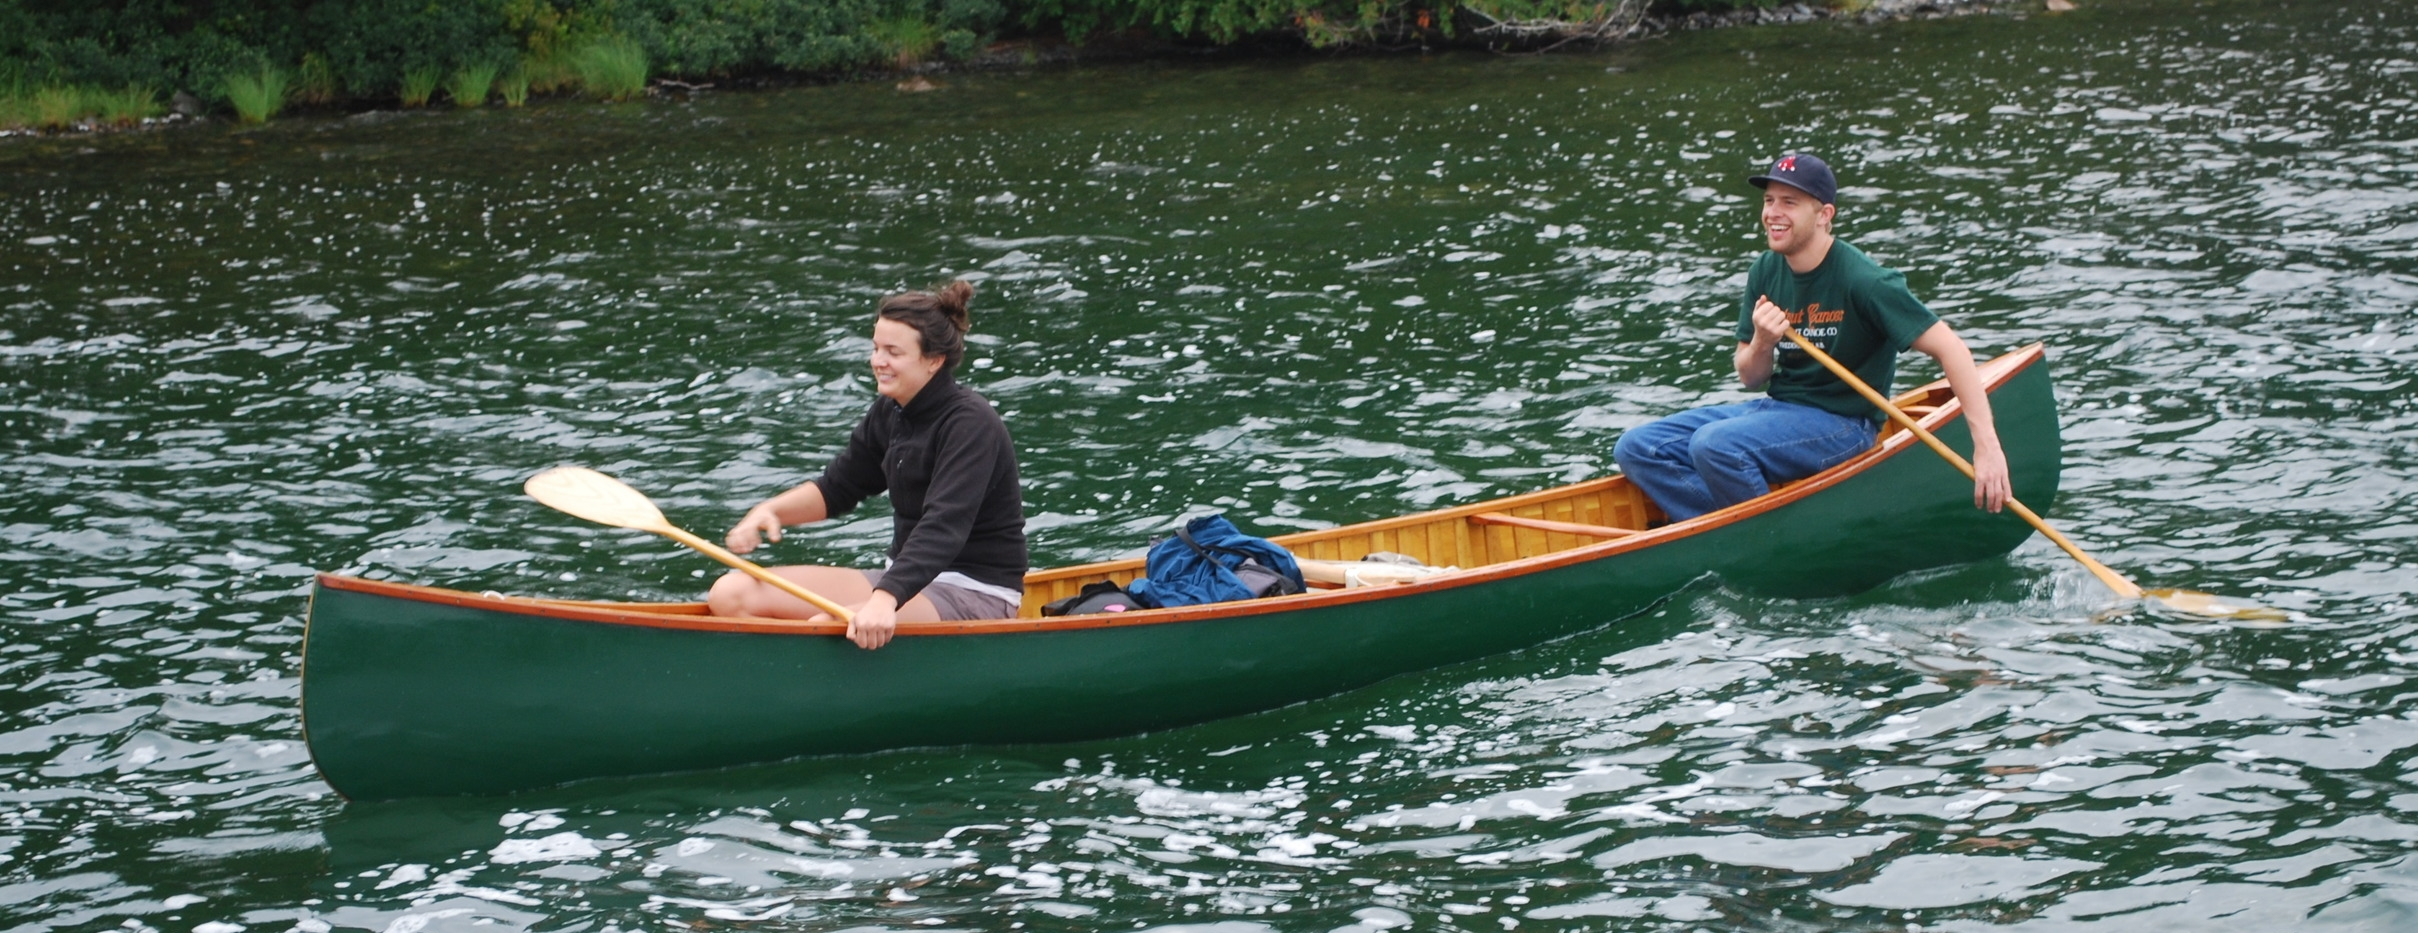 After finishing His canoe at home, Mr. Chris boots was thrilled to get his canoe on the water.